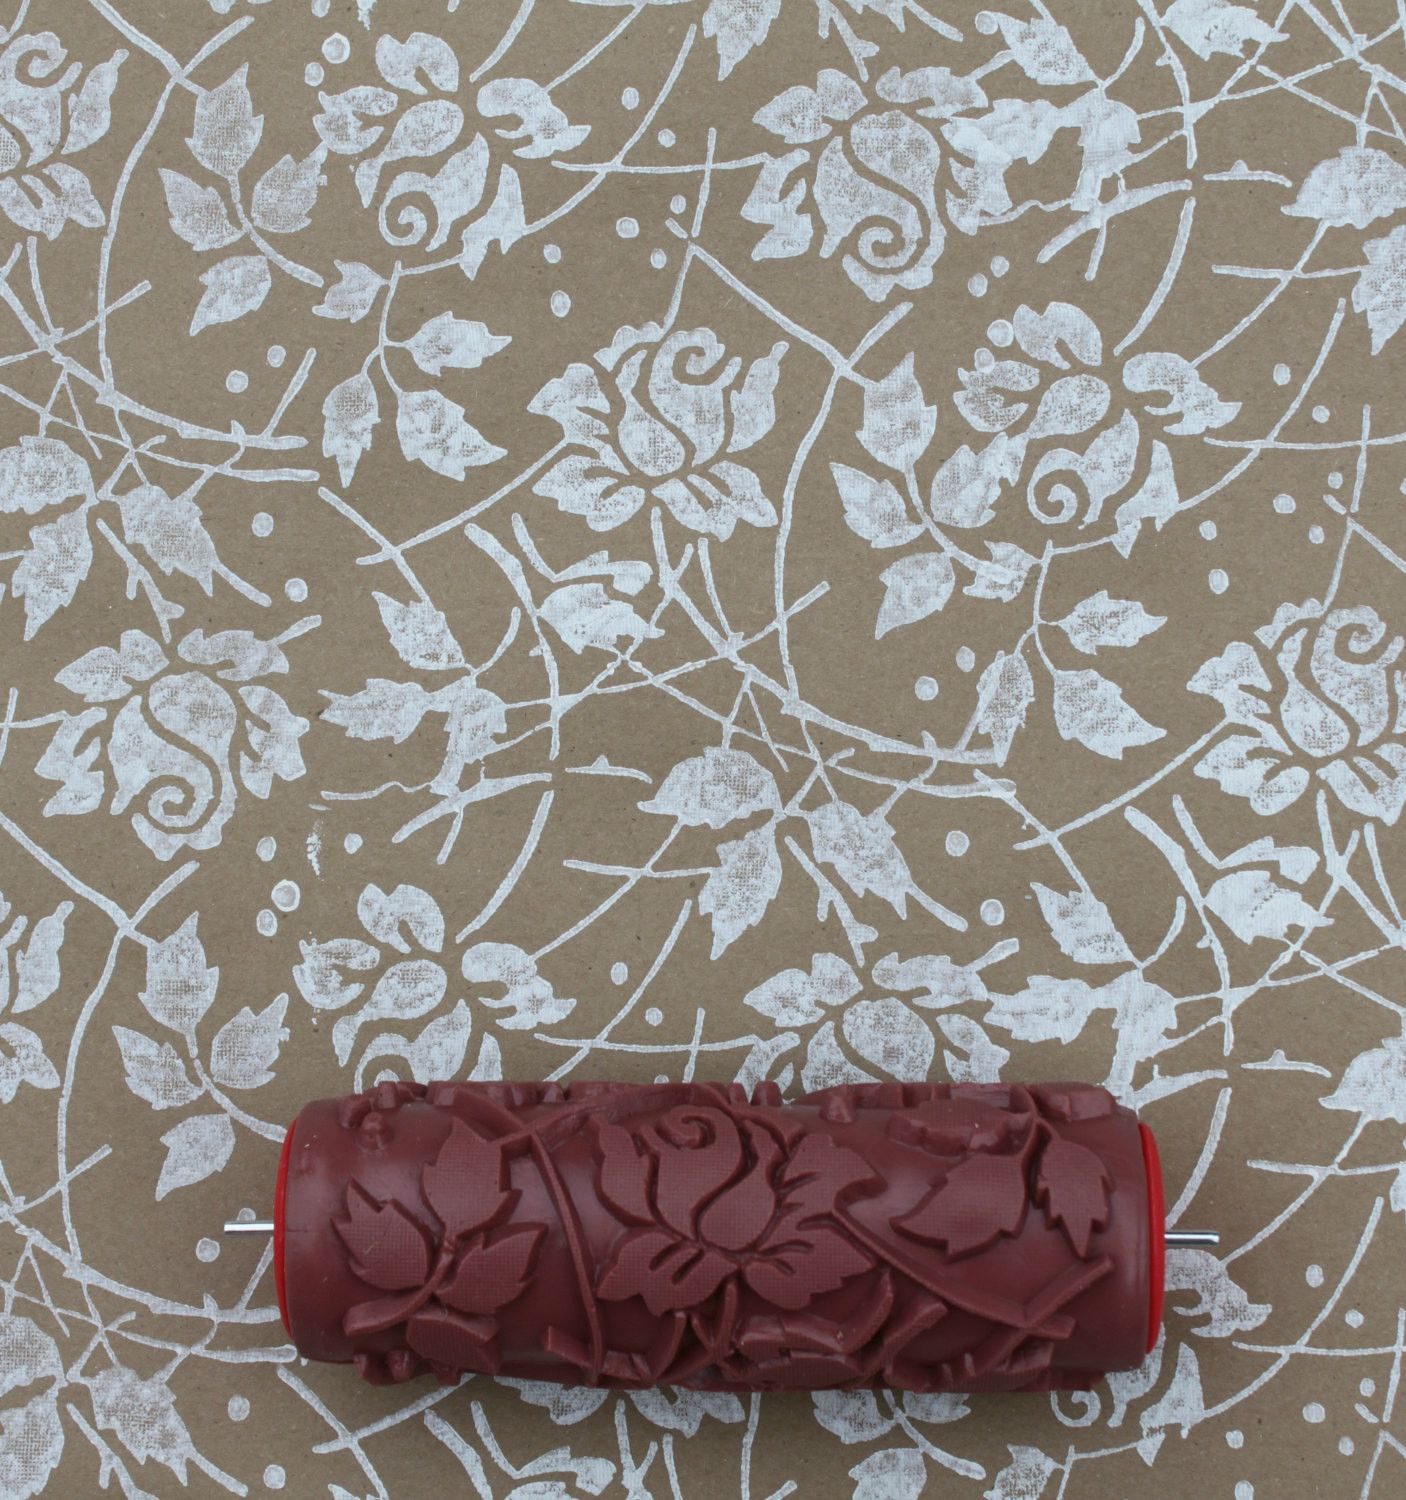 Wallpaper Paint Roller sea rose patterned paint roller | patterned paint rollers, pattern